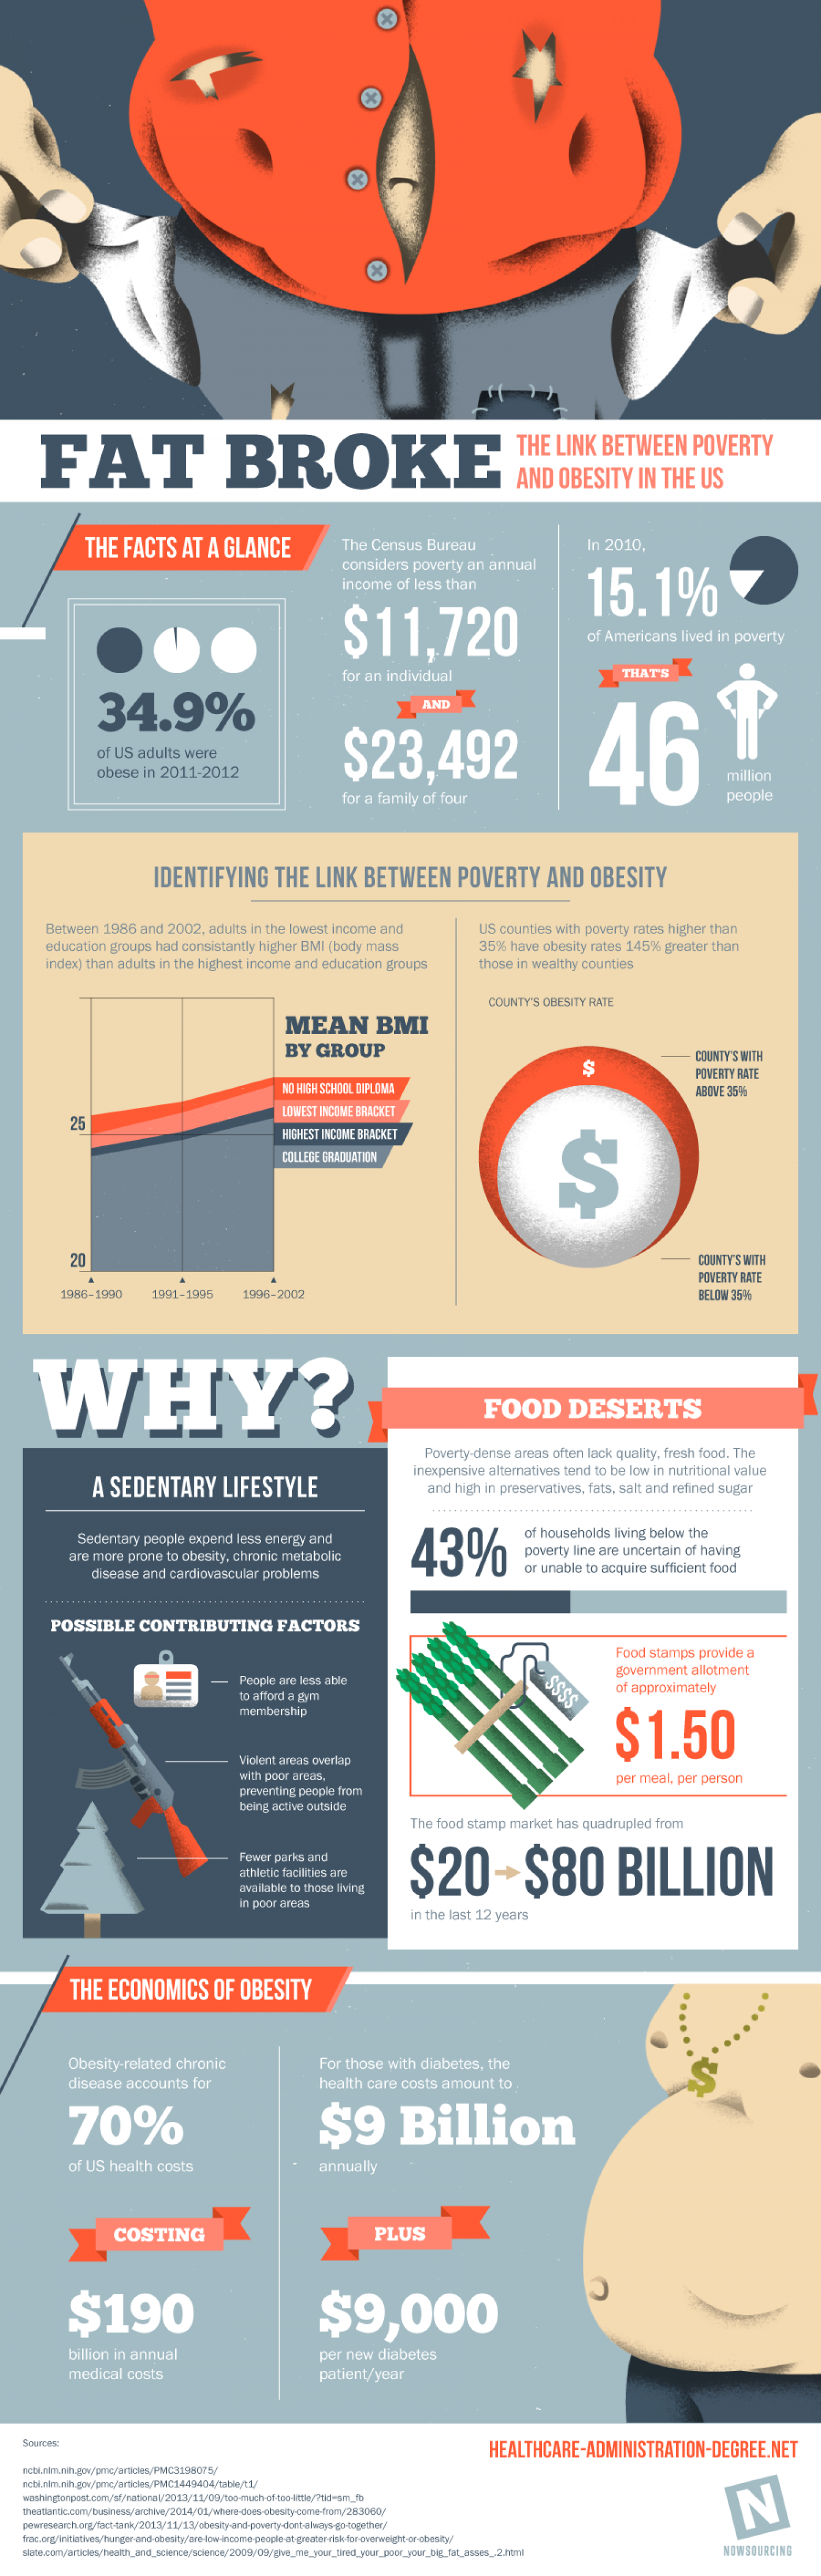 The Link Between Poverty and Obesity Infographic